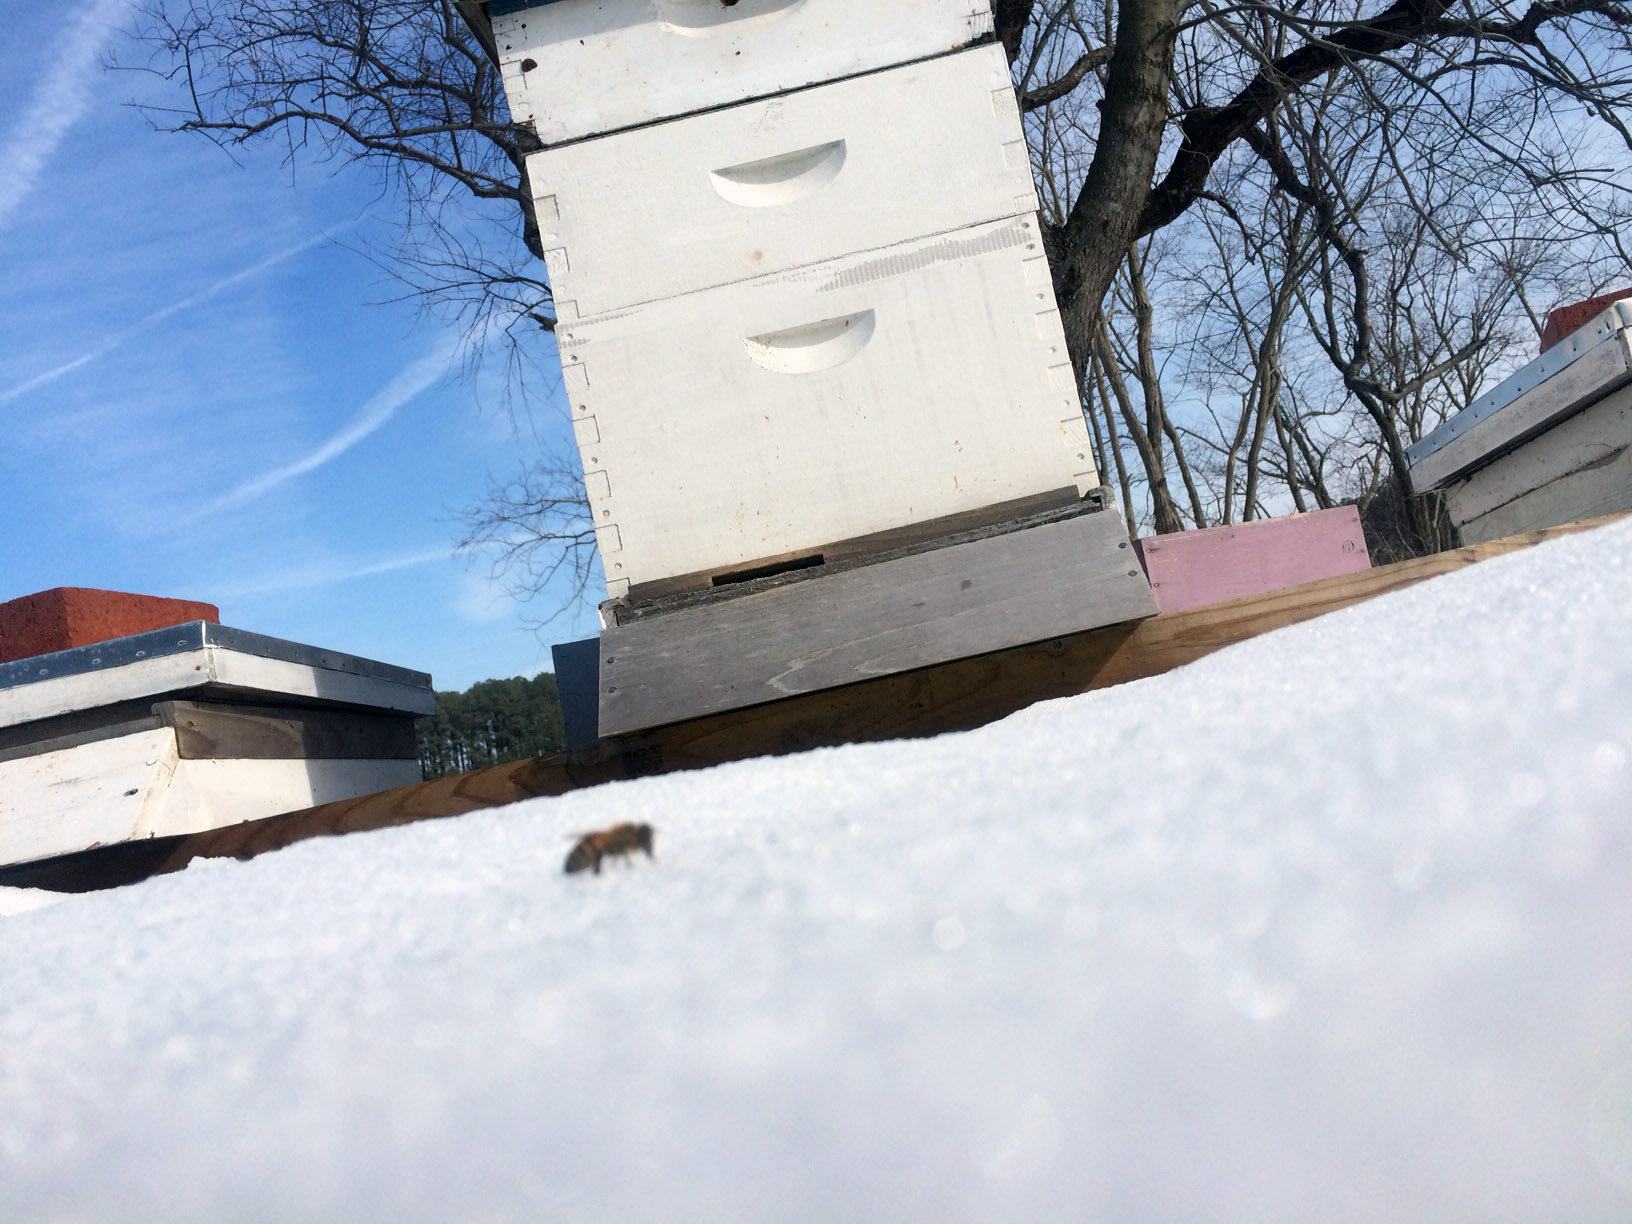 lone snow bee outside the hive in winter